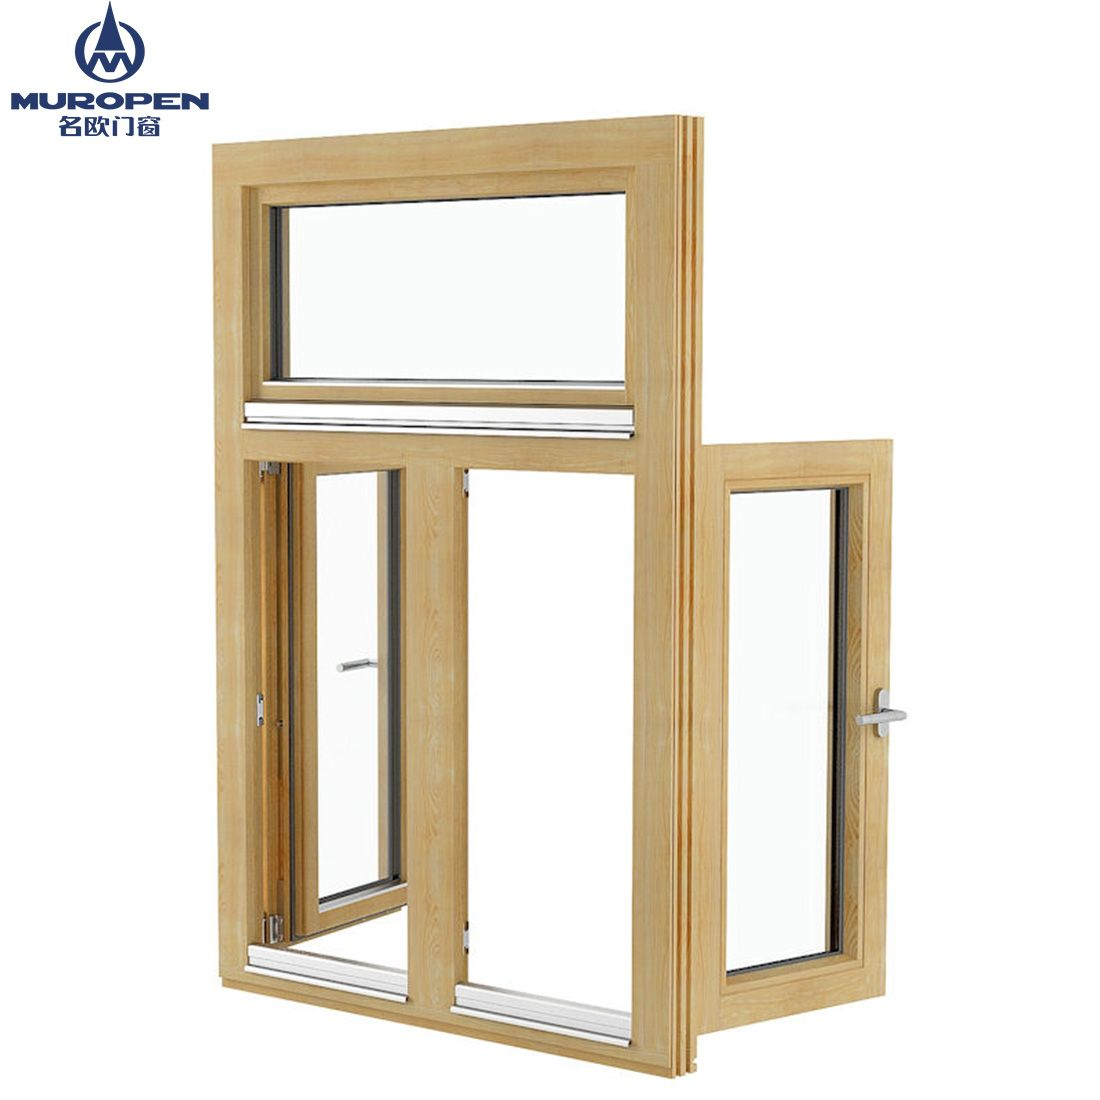 Aluminum Casement Windows Wood Clad Aluminum Windows Swing Casement Hinged Windows Awning Windows Tilt And Aluminum Awnings Casement Windows Awning Windows